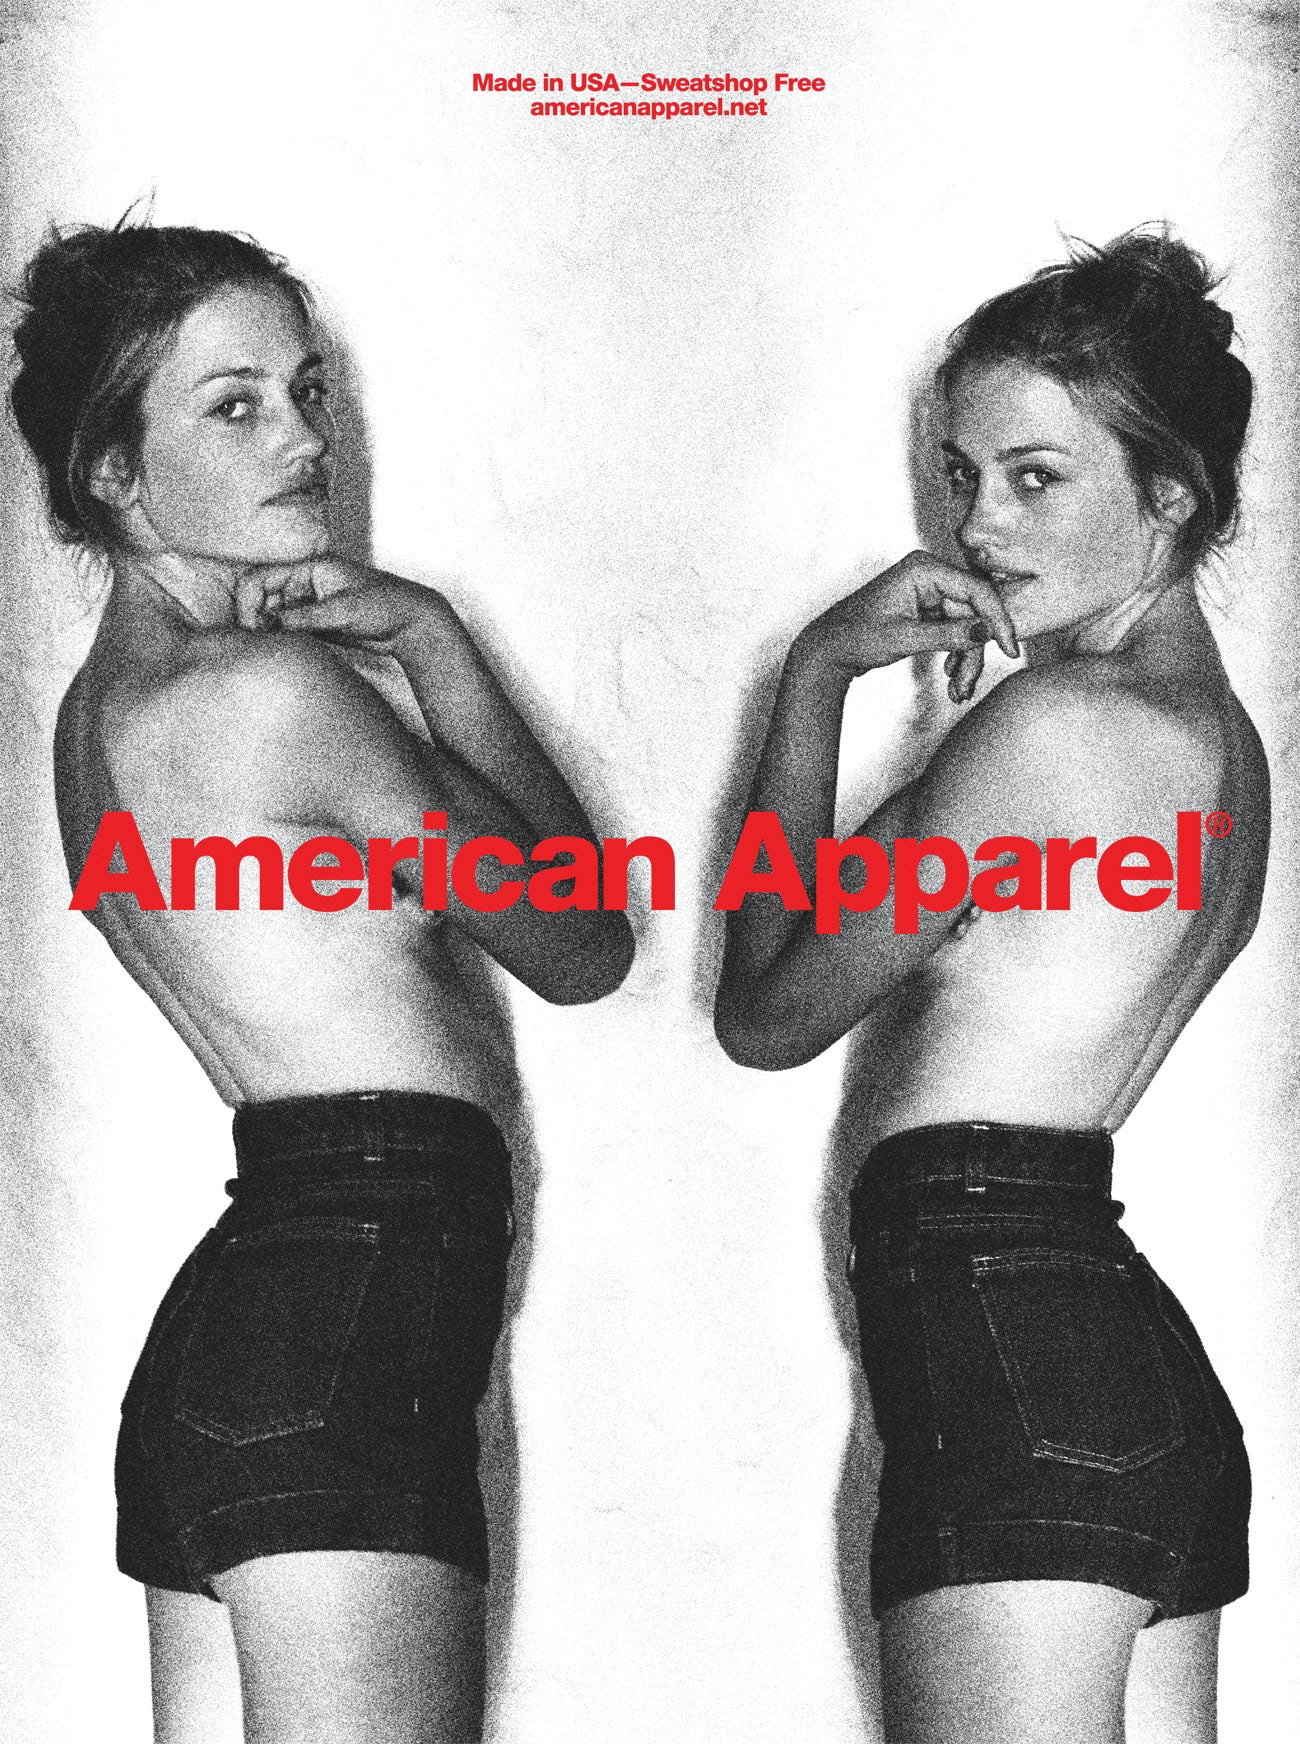 American Apparel uses 'non-models'